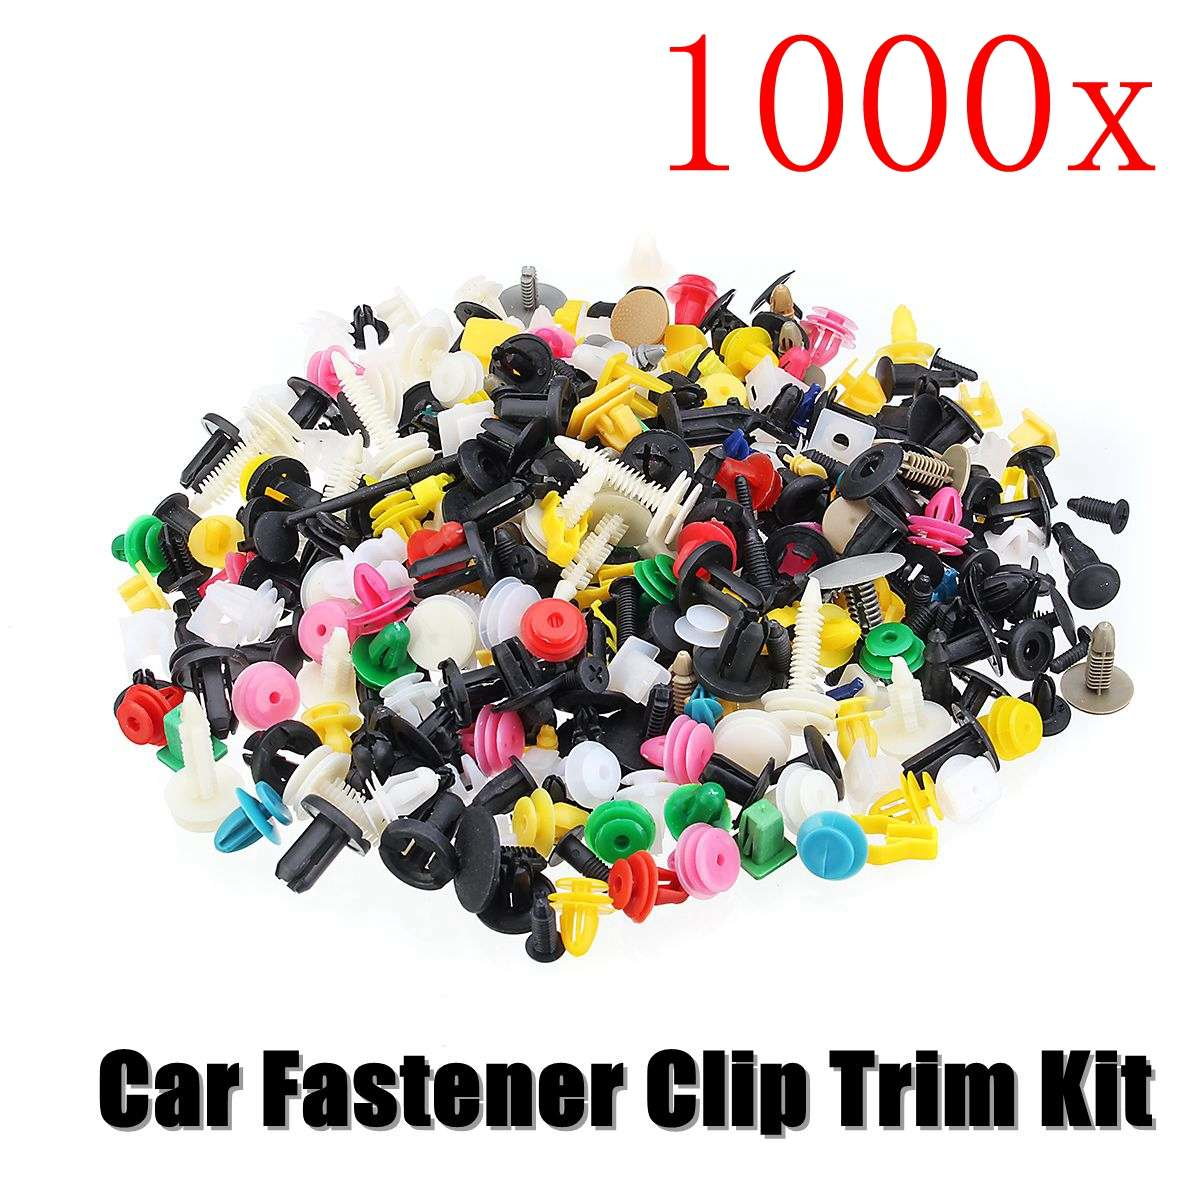 1000Pcs 50kinds Universal Mixed Auto Fastener Car Bumper Clips Retainer Car Fastener Rivet Door Panel Liner For All Car(China)